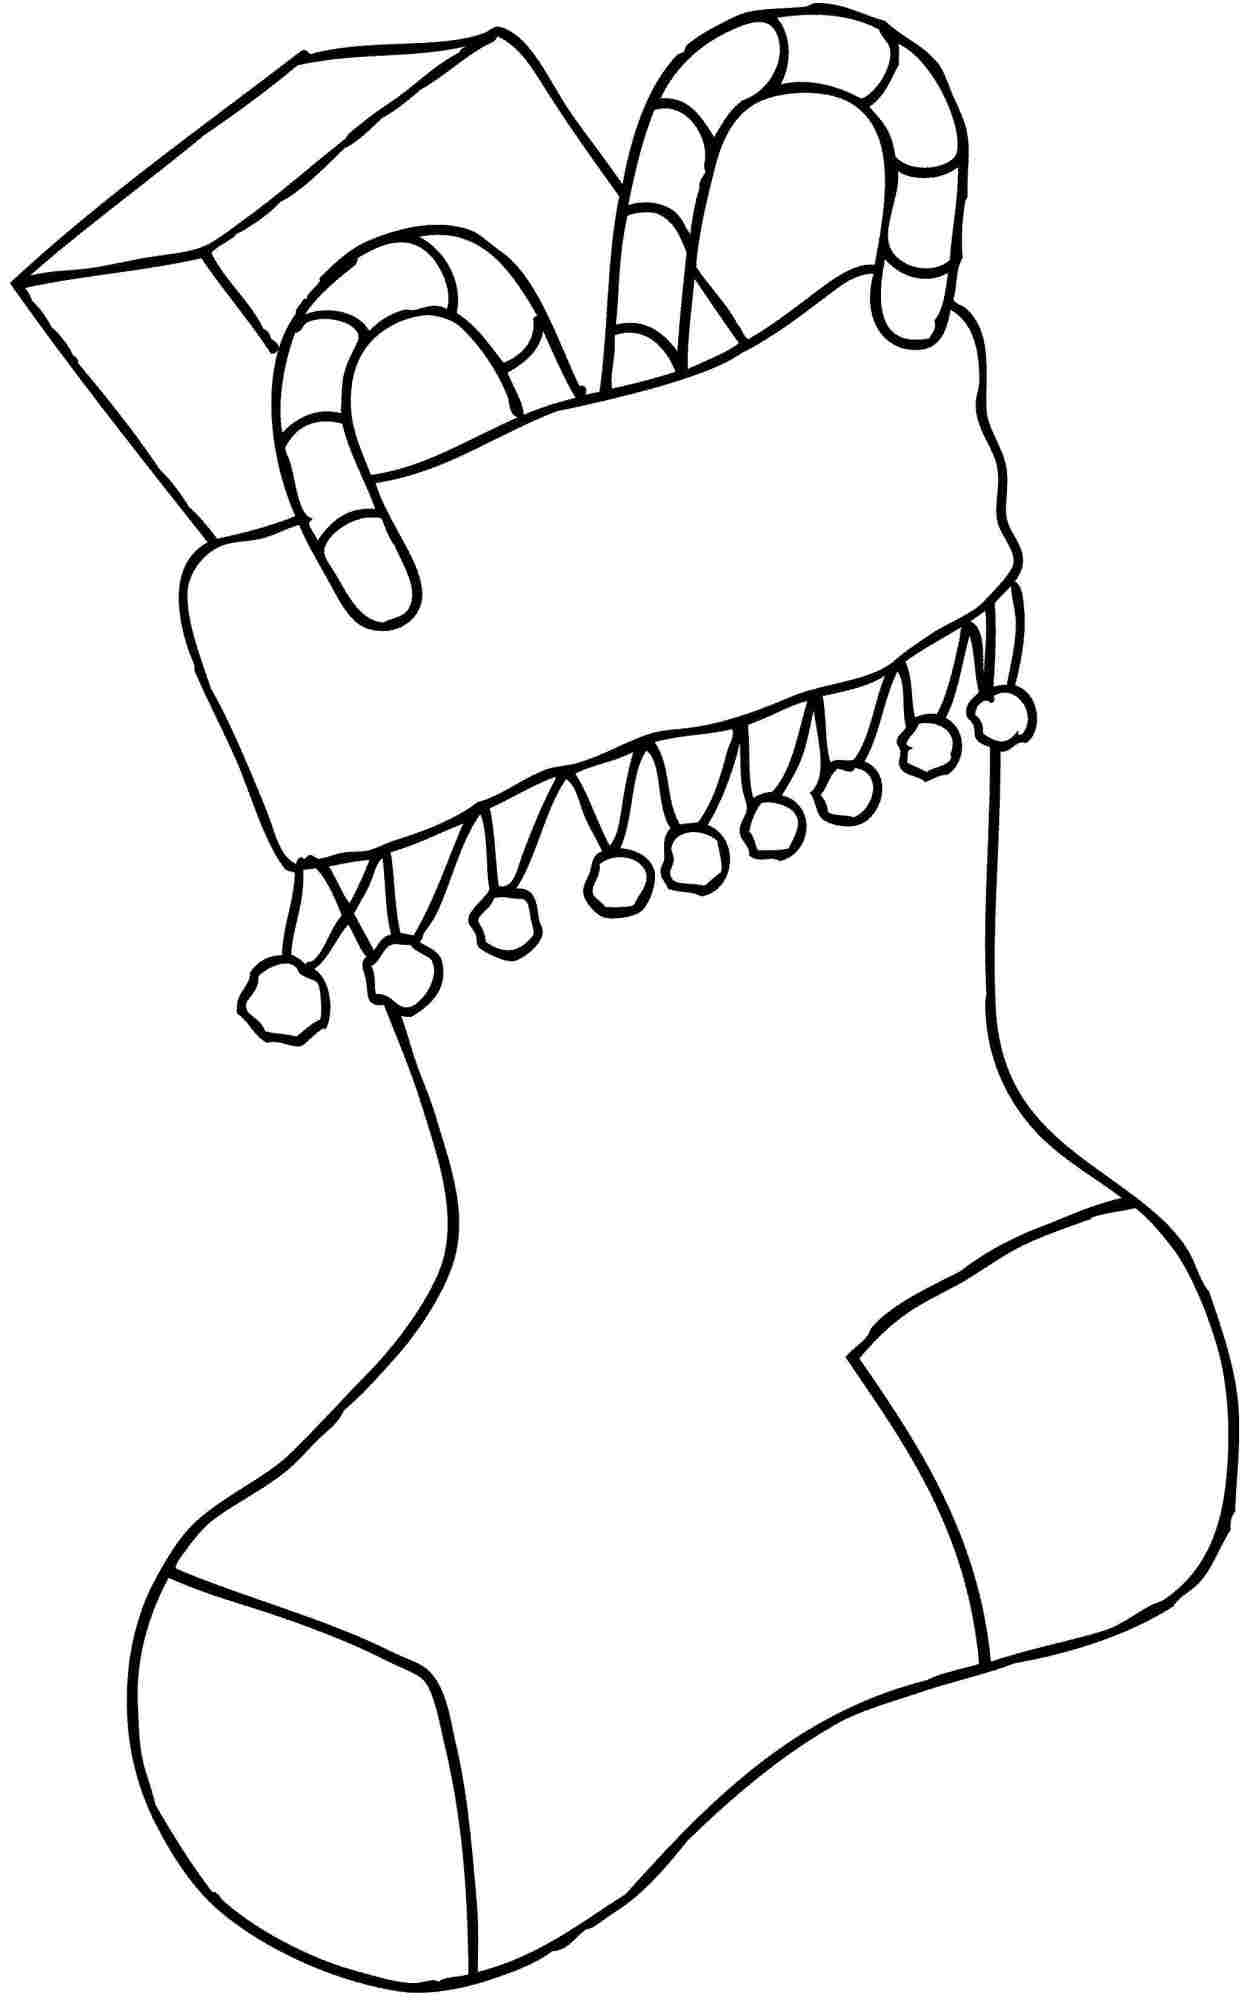 Christmas Stocking Coloring Pages - Best Coloring Pages ...